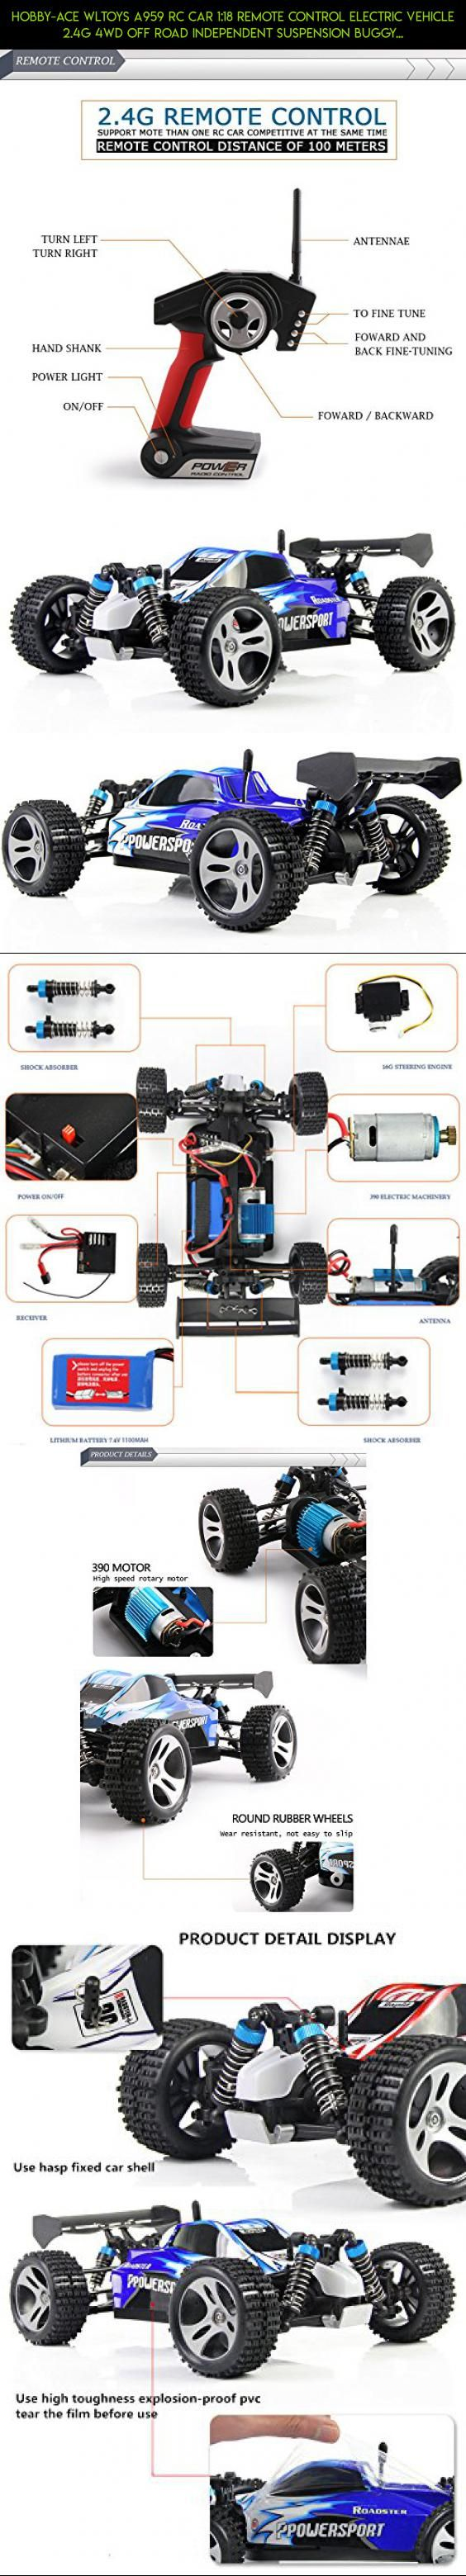 Hobby-Ace WLtoys A959 RC Car 1:18 Remote Control Electric Vehicle 2.4G 4WD Off Road Independent Suspension Buggy Radio Control RTR Blue #technology #camera #shopping #4wd #products #fpv #kit #gadgets #plans #parts #drone #racing #wltoys #tech